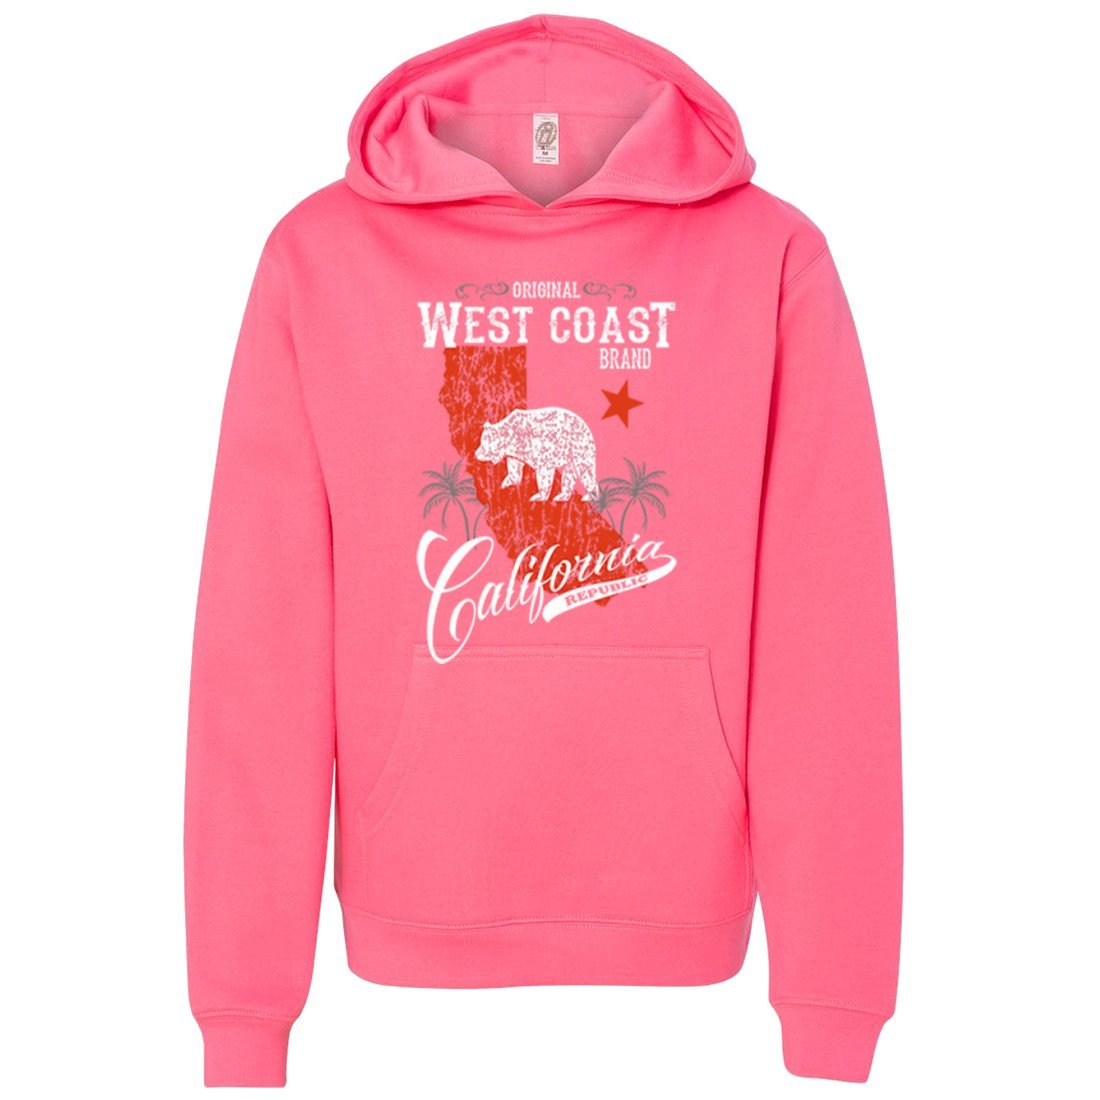 California West Coast Brand Premium Youth Sweatshirt Hoodie